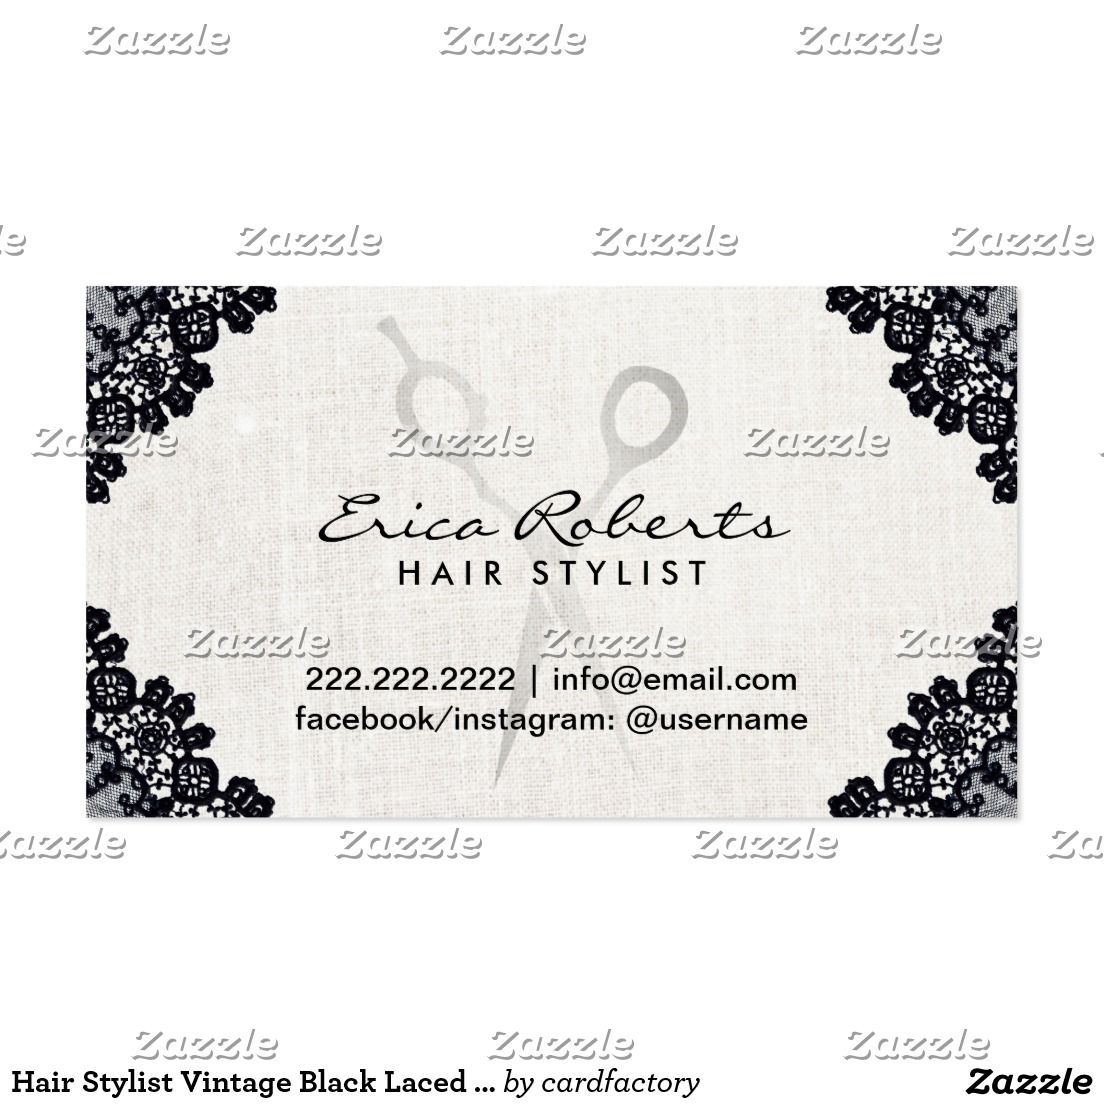 Hair Stylist Vintage Black Laced Salon Appointment Business Card ...